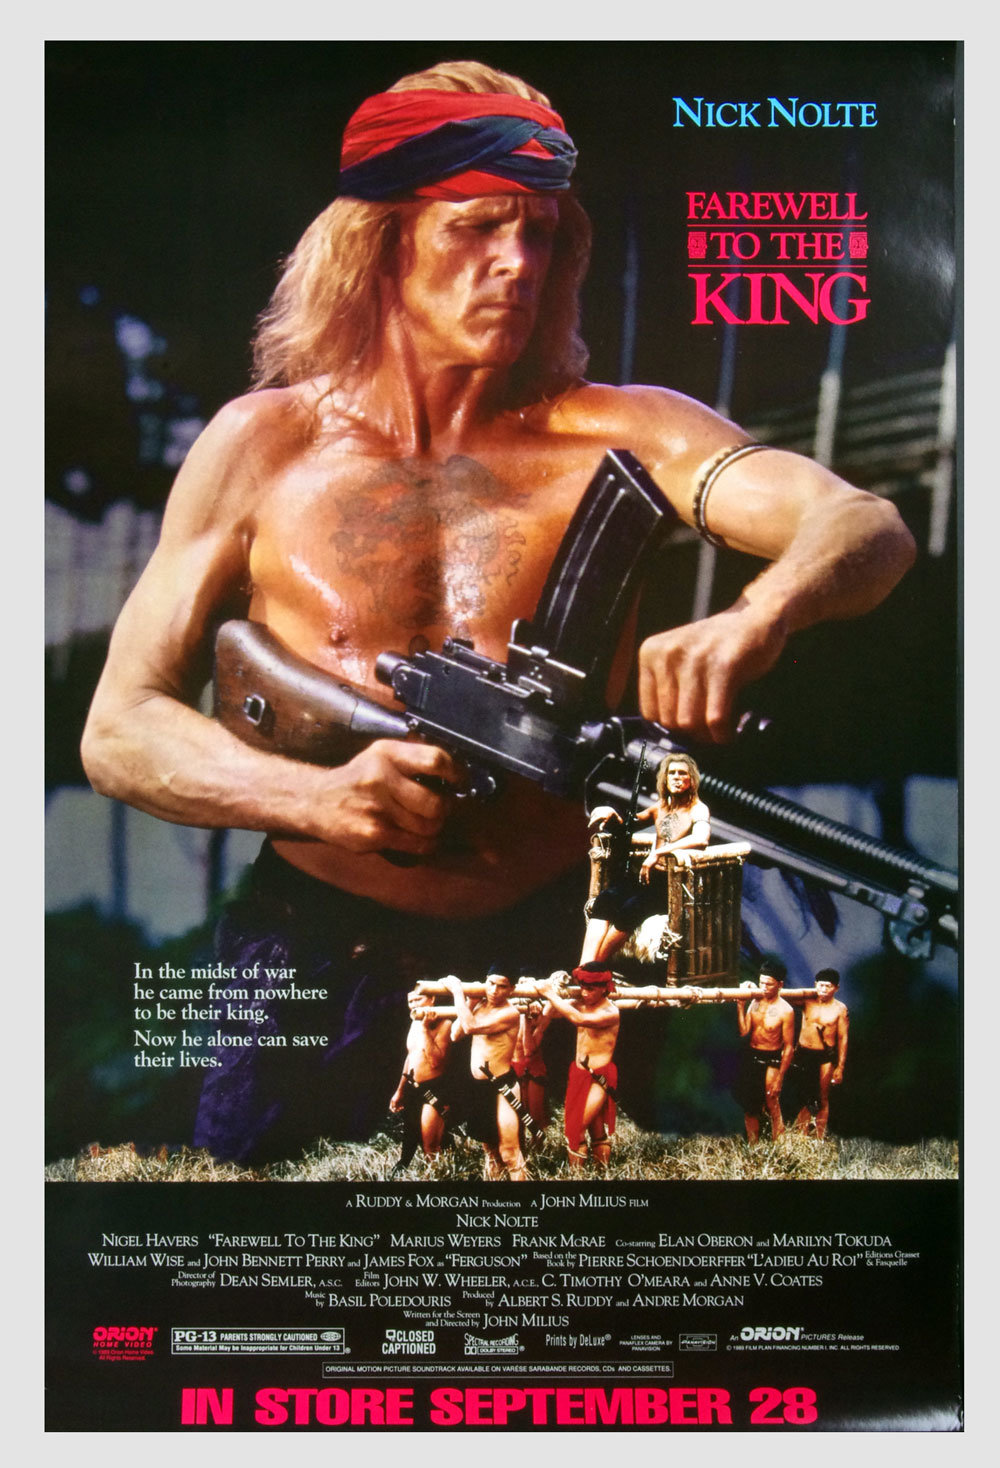 Farewell To The King Poster 1989 Nick Nolte Home Video Promo 25 x 38